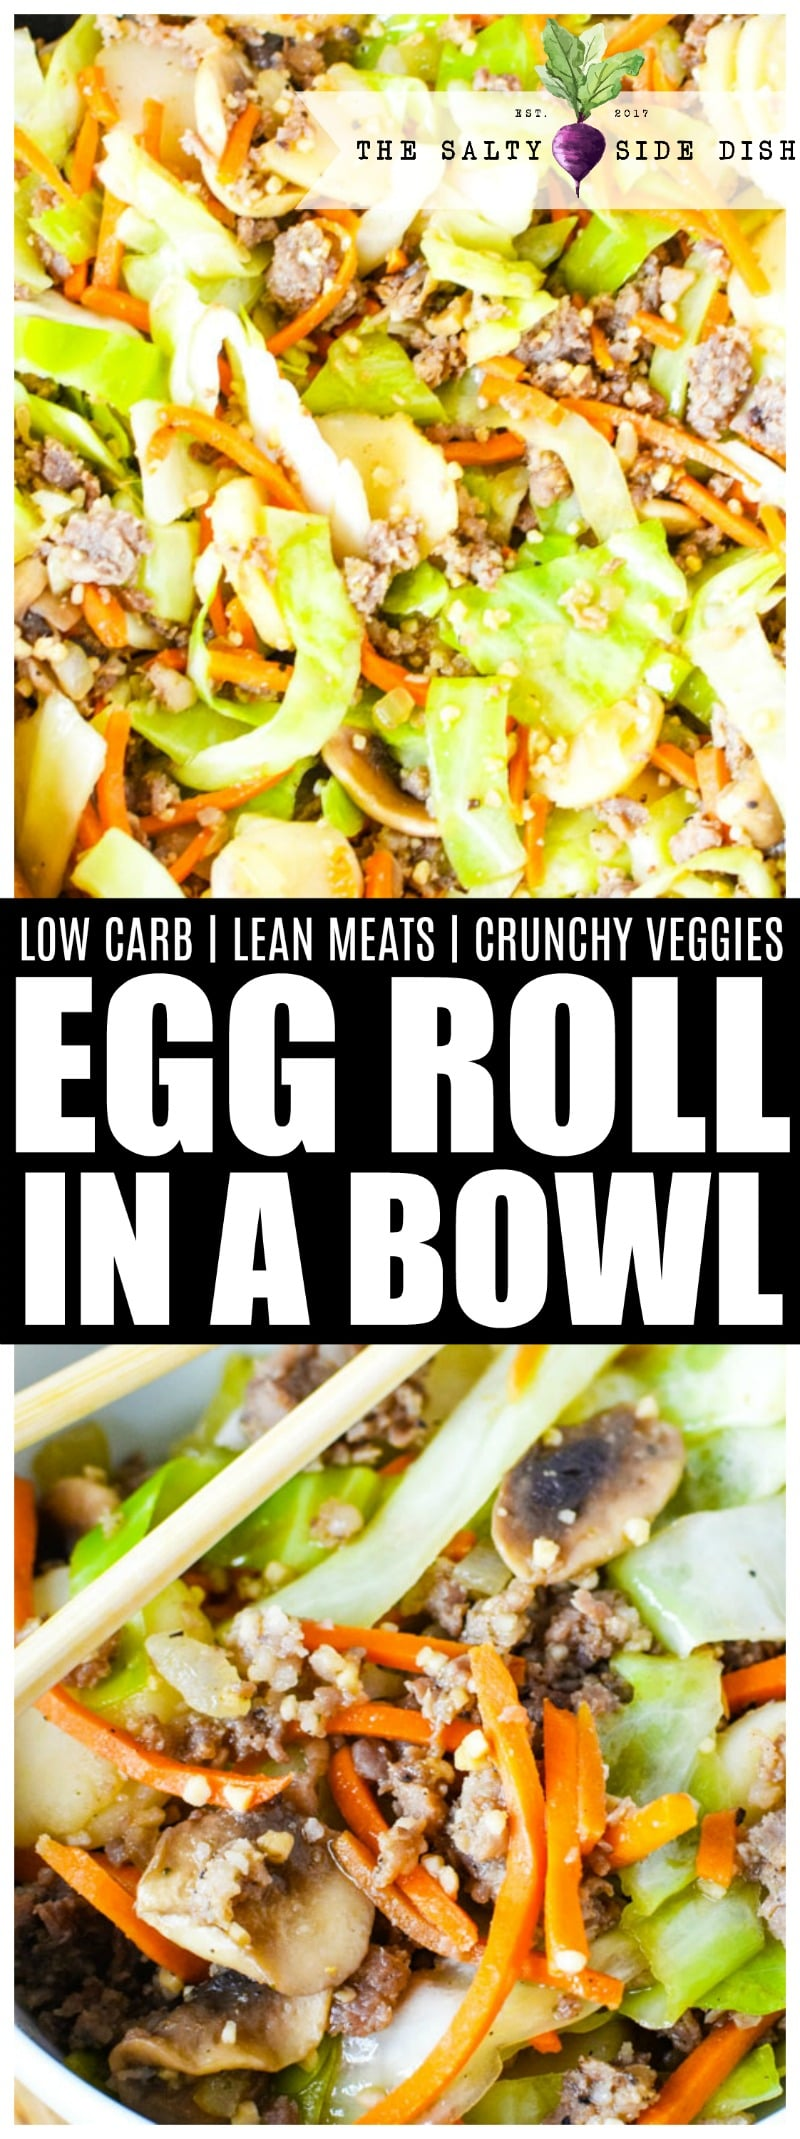 Egg Roll In A Bowl | Deconstructed Egg Roll Recipe perfect for main dish, side dish, all dishes! AMAZING flavor, low carb meal #sidedish #asianflavors #eggroll #maindish #dinner #appetizer #homecooking